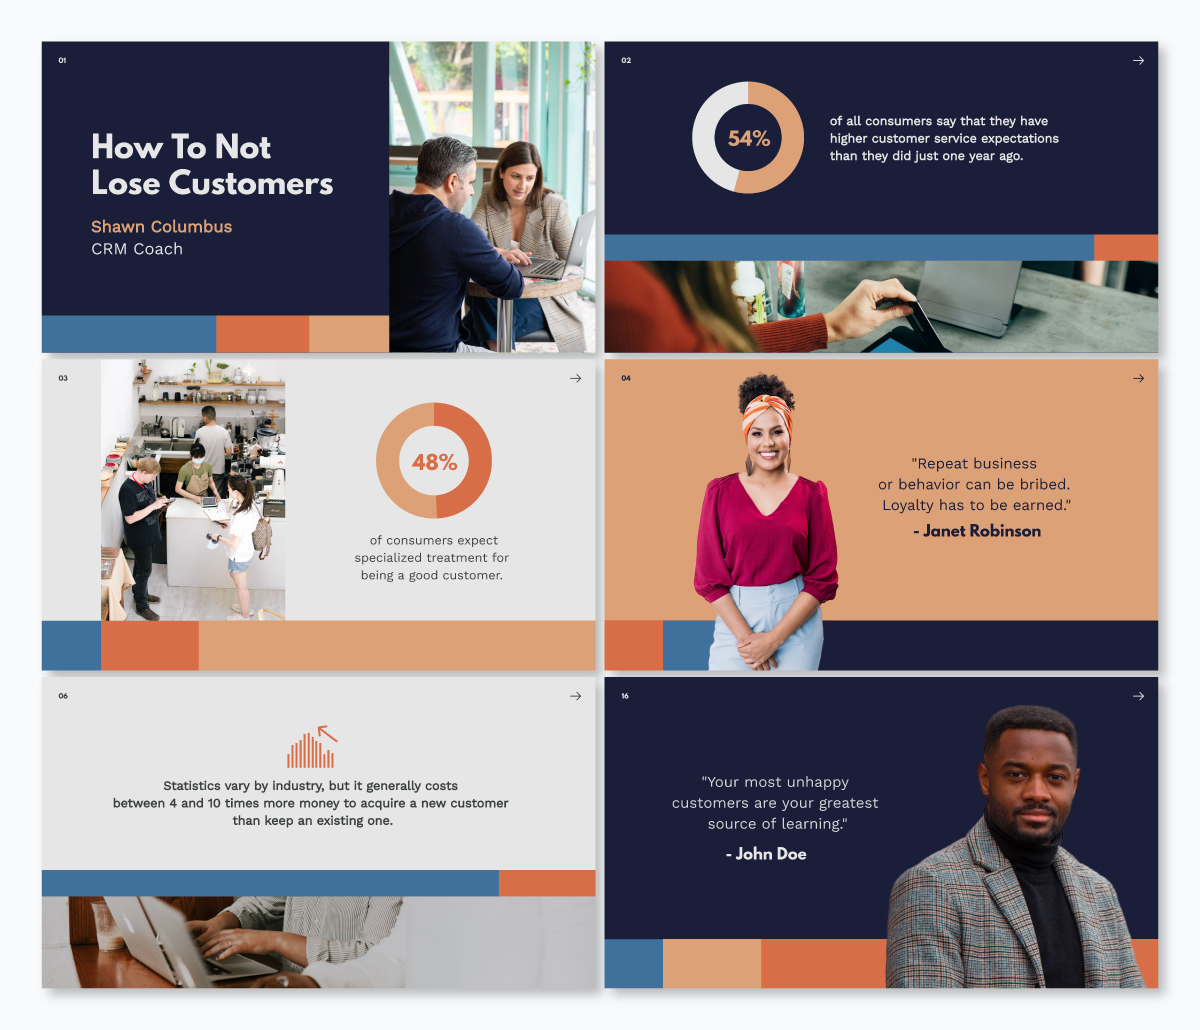 A customer service keynote template available in Visme.